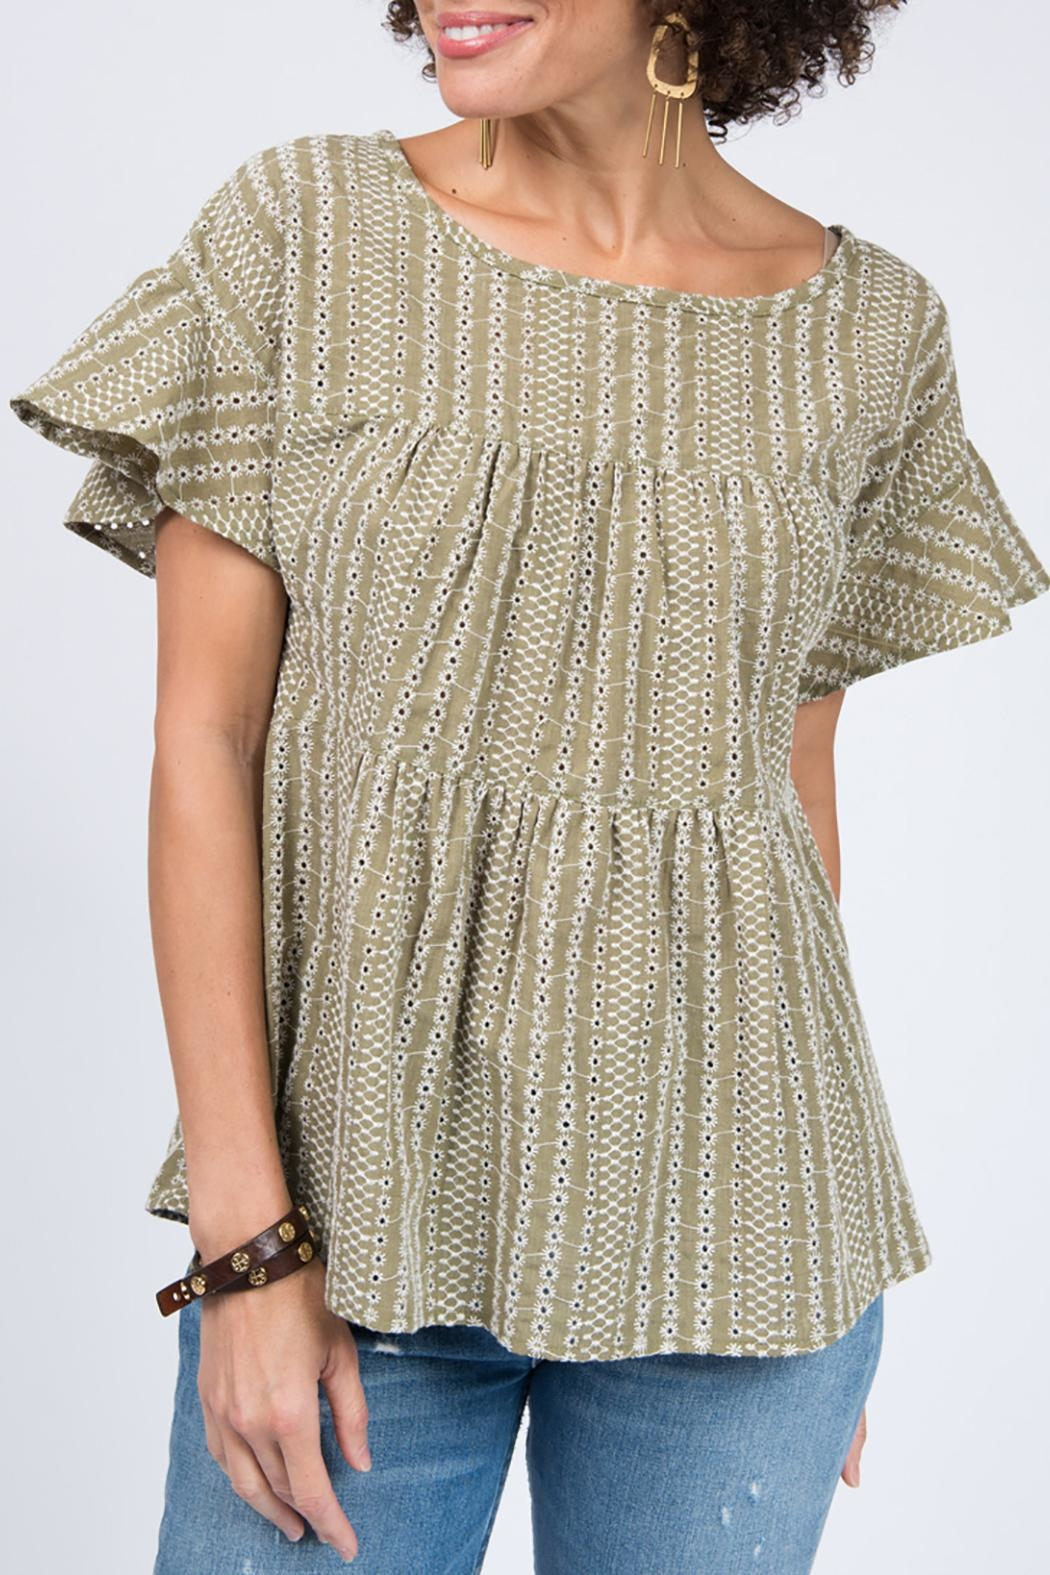 Ivy Jane Tiered Eyelet Top - Front Full Image